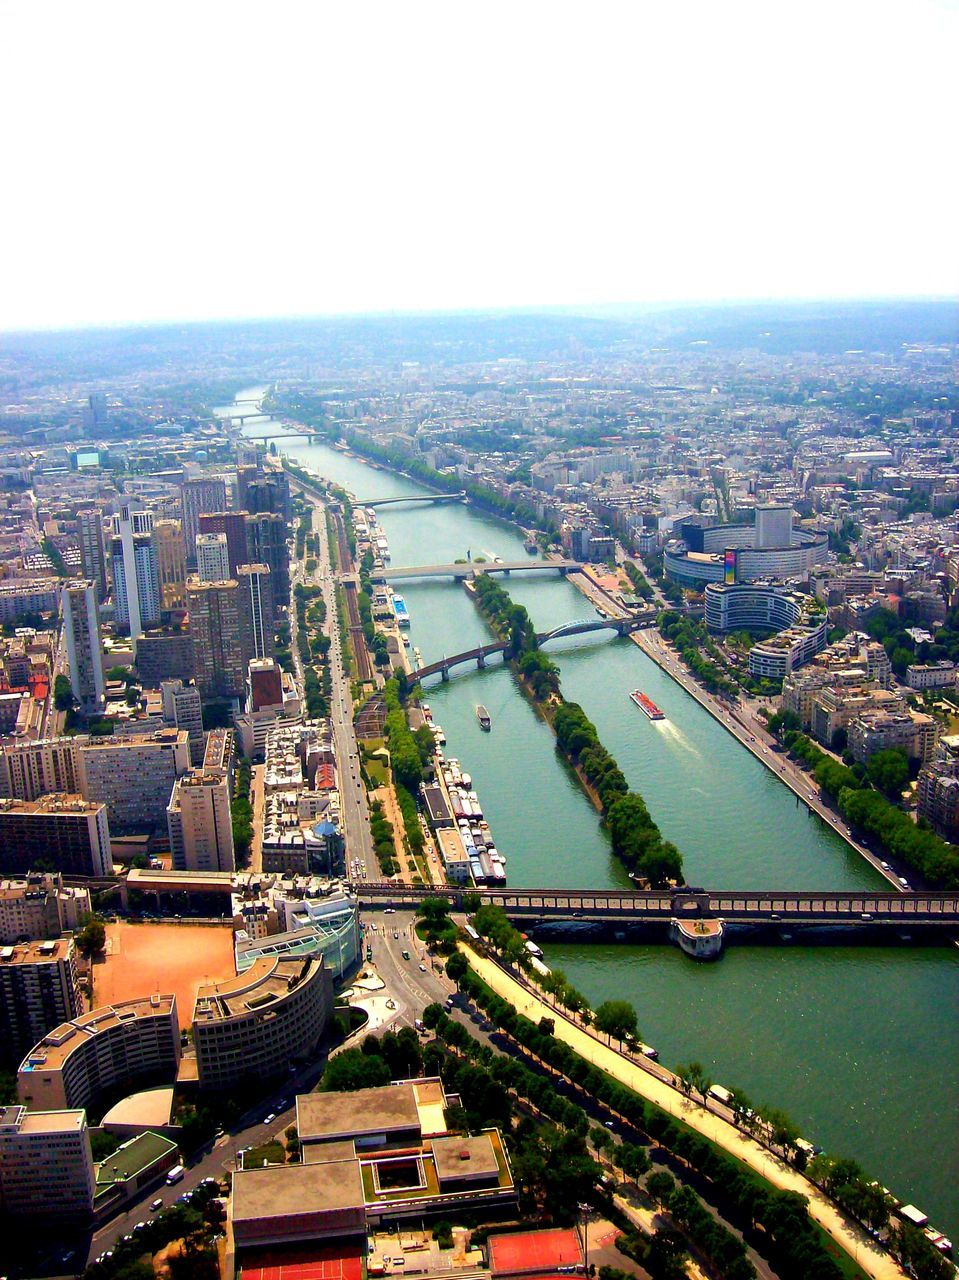 architecture, cityscape, city, building exterior, built structure, travel destinations, aerial view, high angle view, river, skyscraper, crowded, outdoors, day, bridge - man made structure, clear sky, sky, modern, water, urban skyline